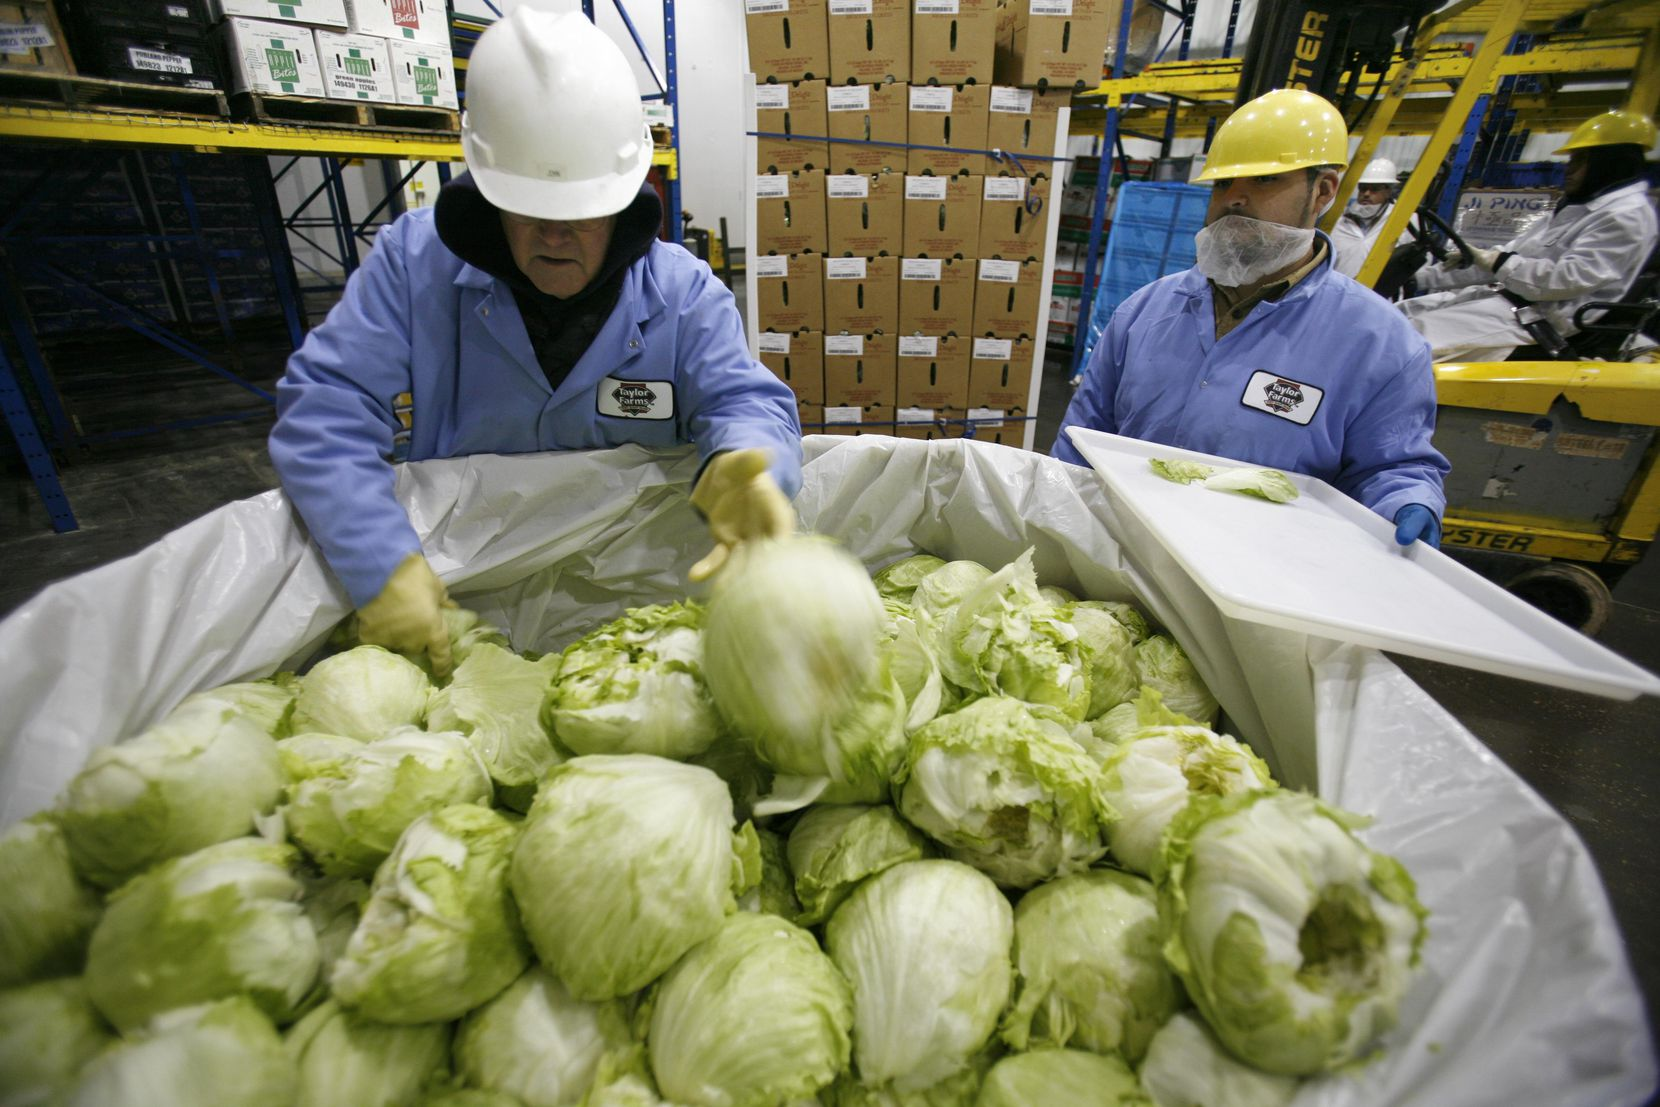 A quality assurance employee spot checked boxes of lettuce upon the shipment's arrival from Mexico at the Taylor Farms warehouse in Dallas in December 2007. Several of the plant's workers have tested positive for COVID-19.